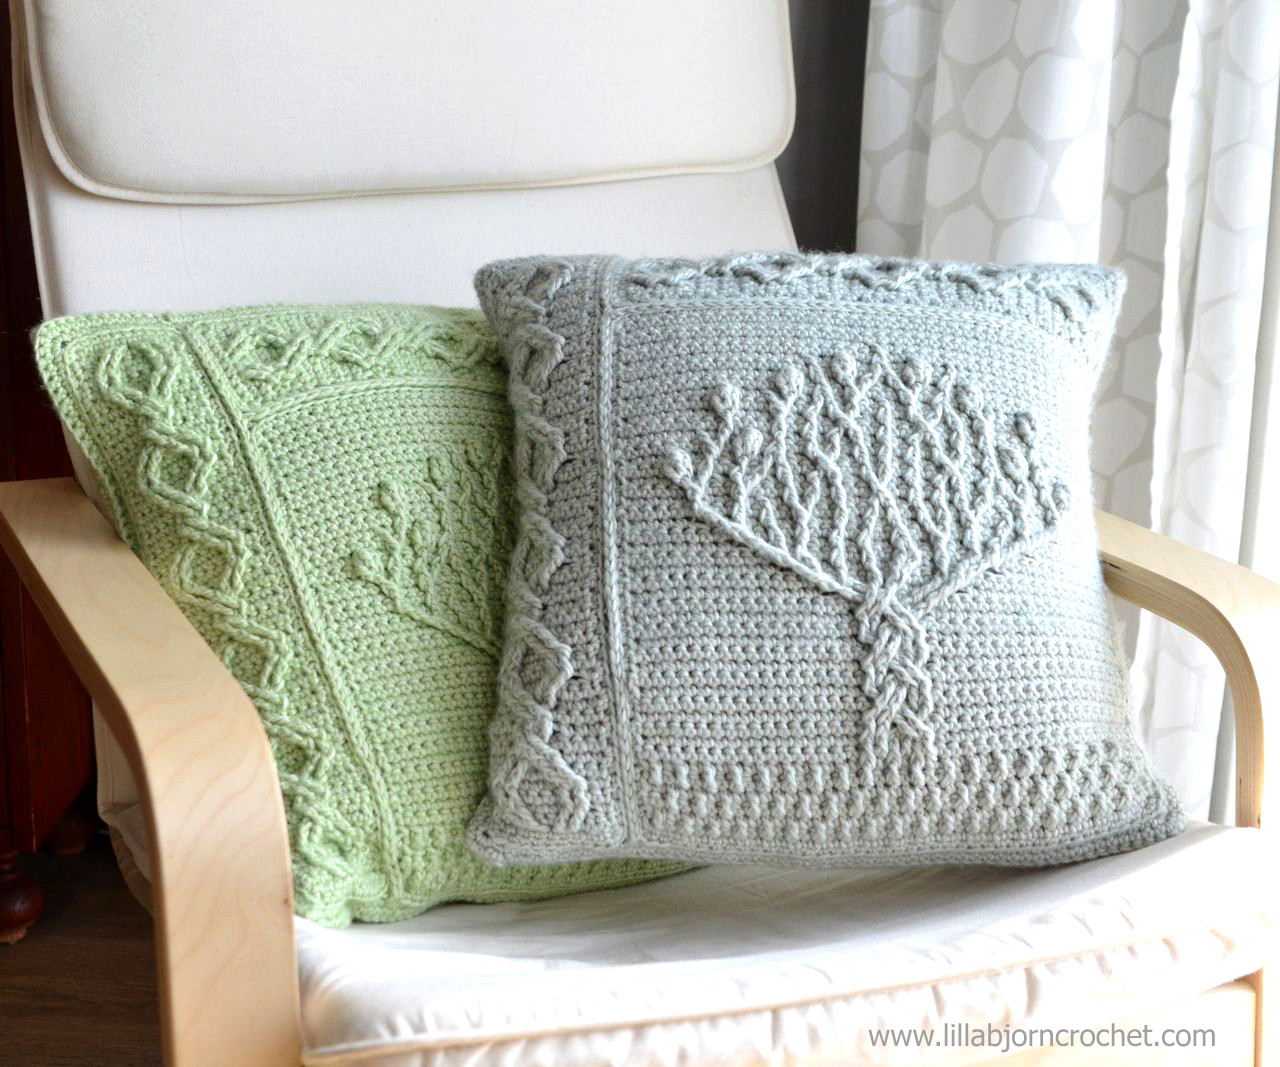 Crochet Pillow Beautiful Tree Of Life Pillow – New Overlay Crochet Pattern Of Superb 50 Images Crochet Pillow